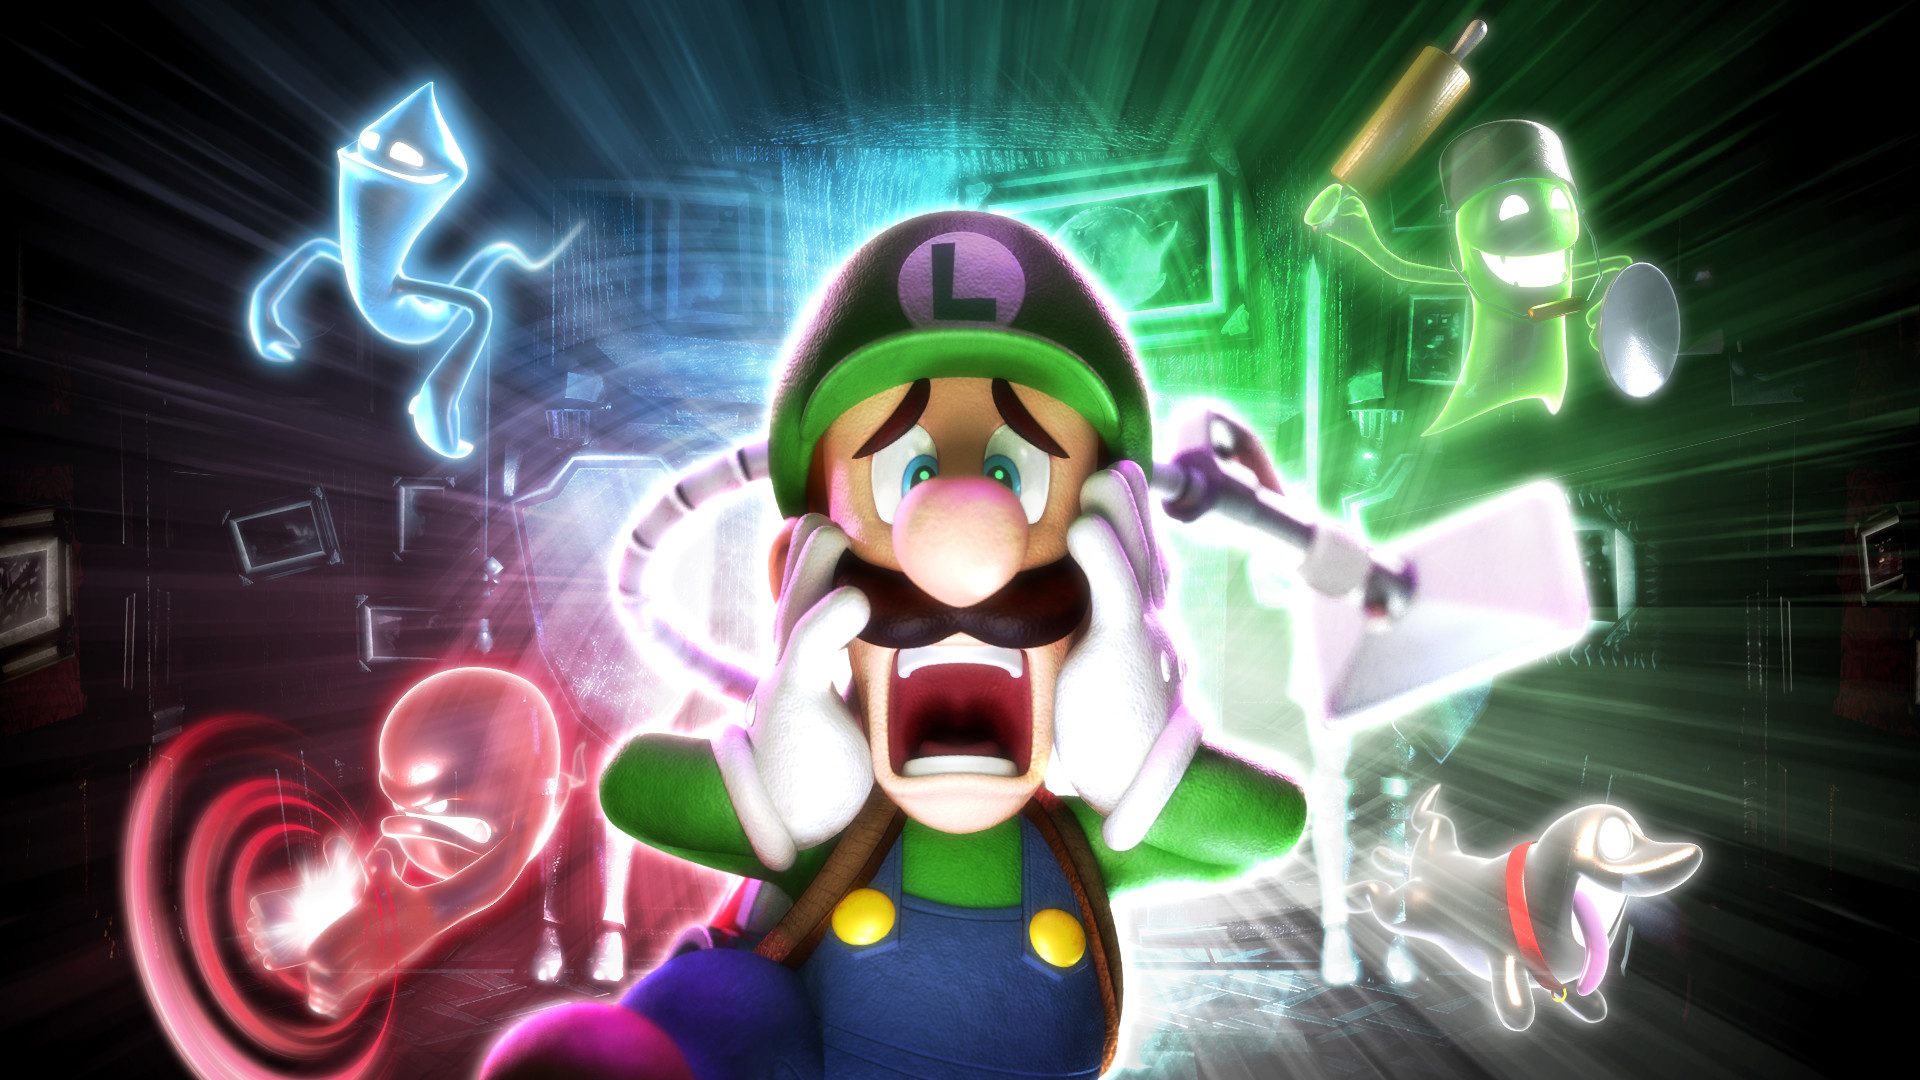 1920x1080 Cheer Luigi up and buy his game. You'll need a 3DS too,